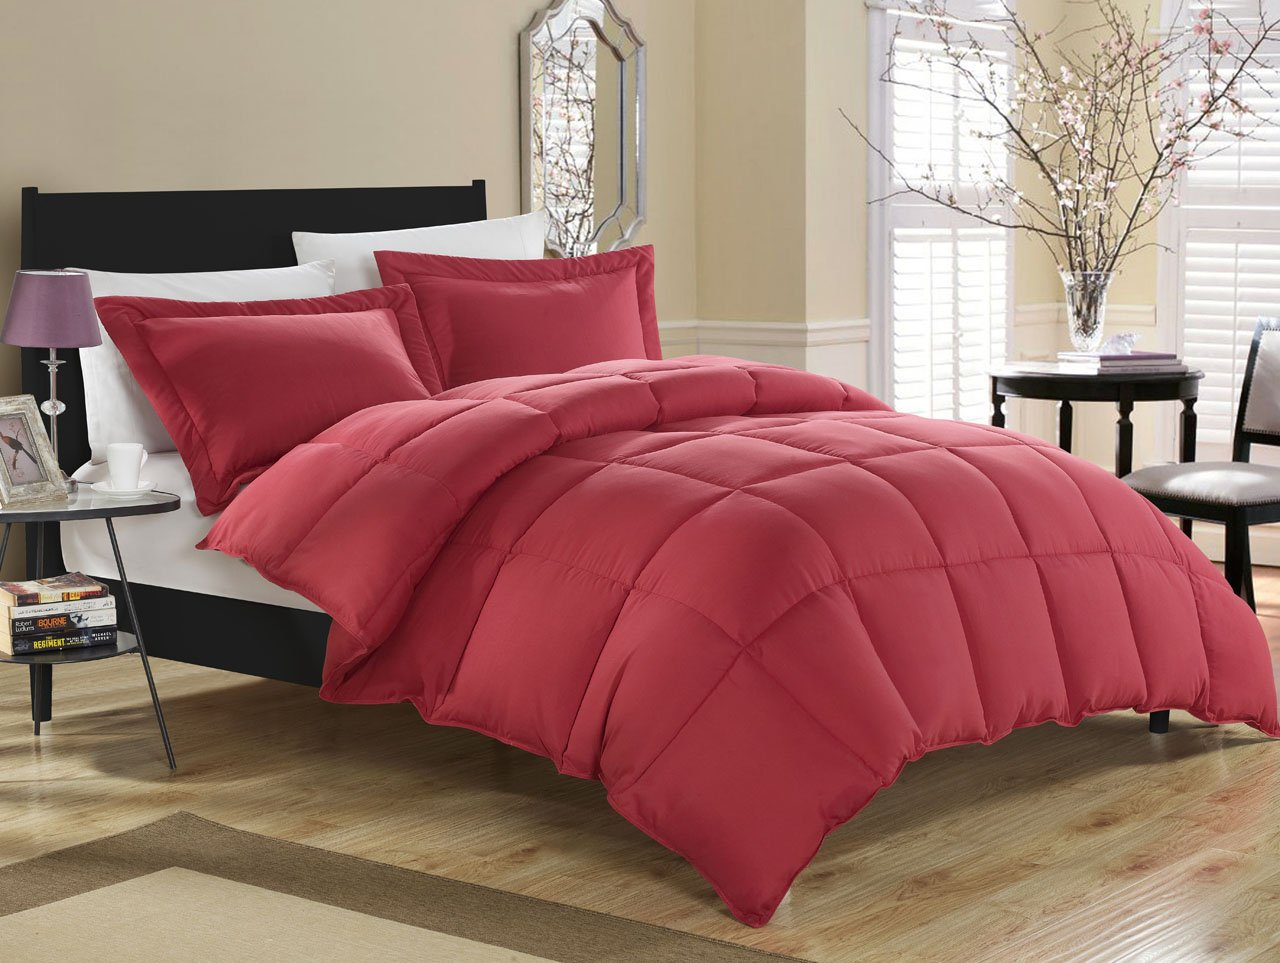 plain caroline store red cover product duvet queen photo mitchells online